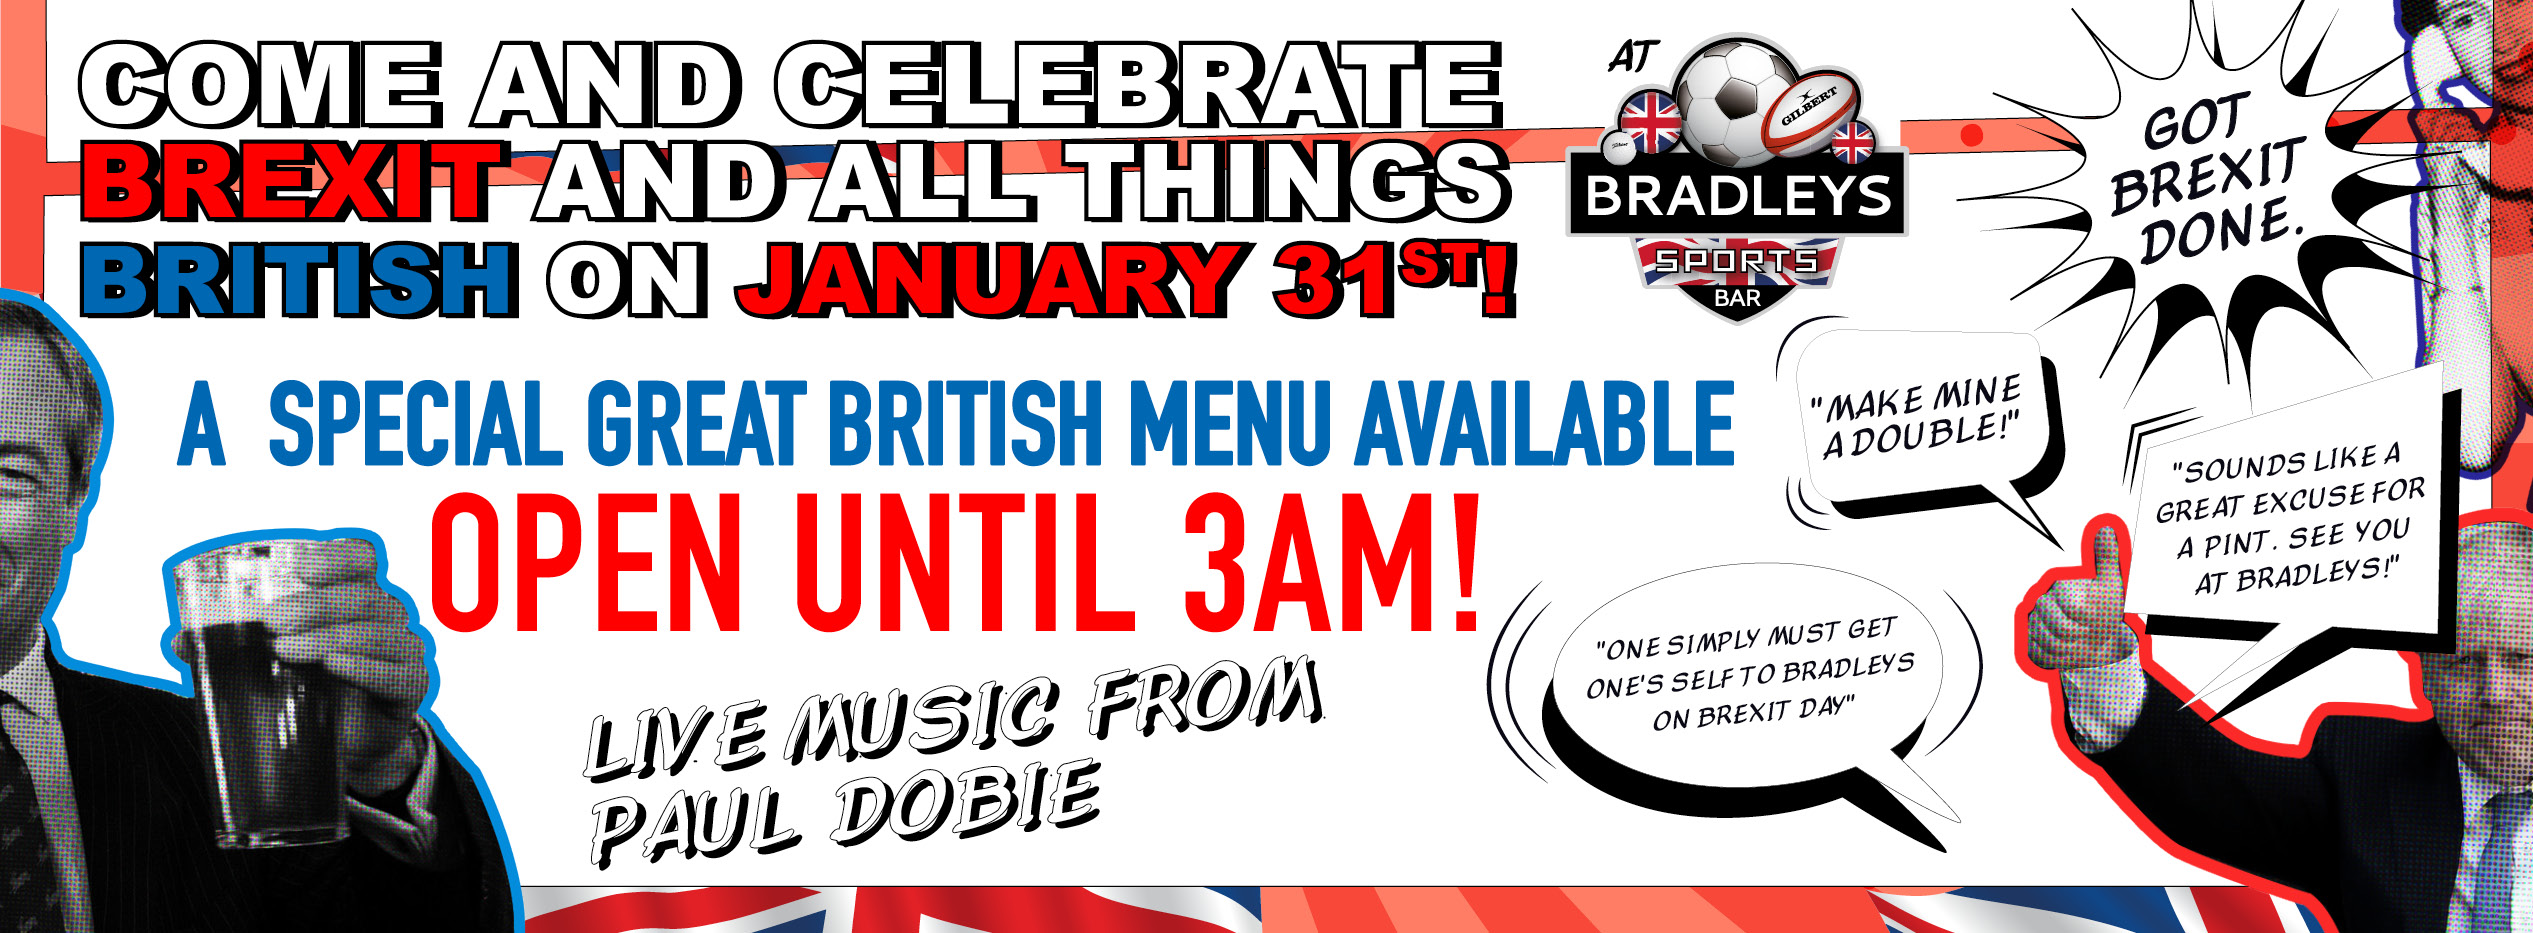 CELEBRATE BREXIT WITH US ON 31ST JANUARY!